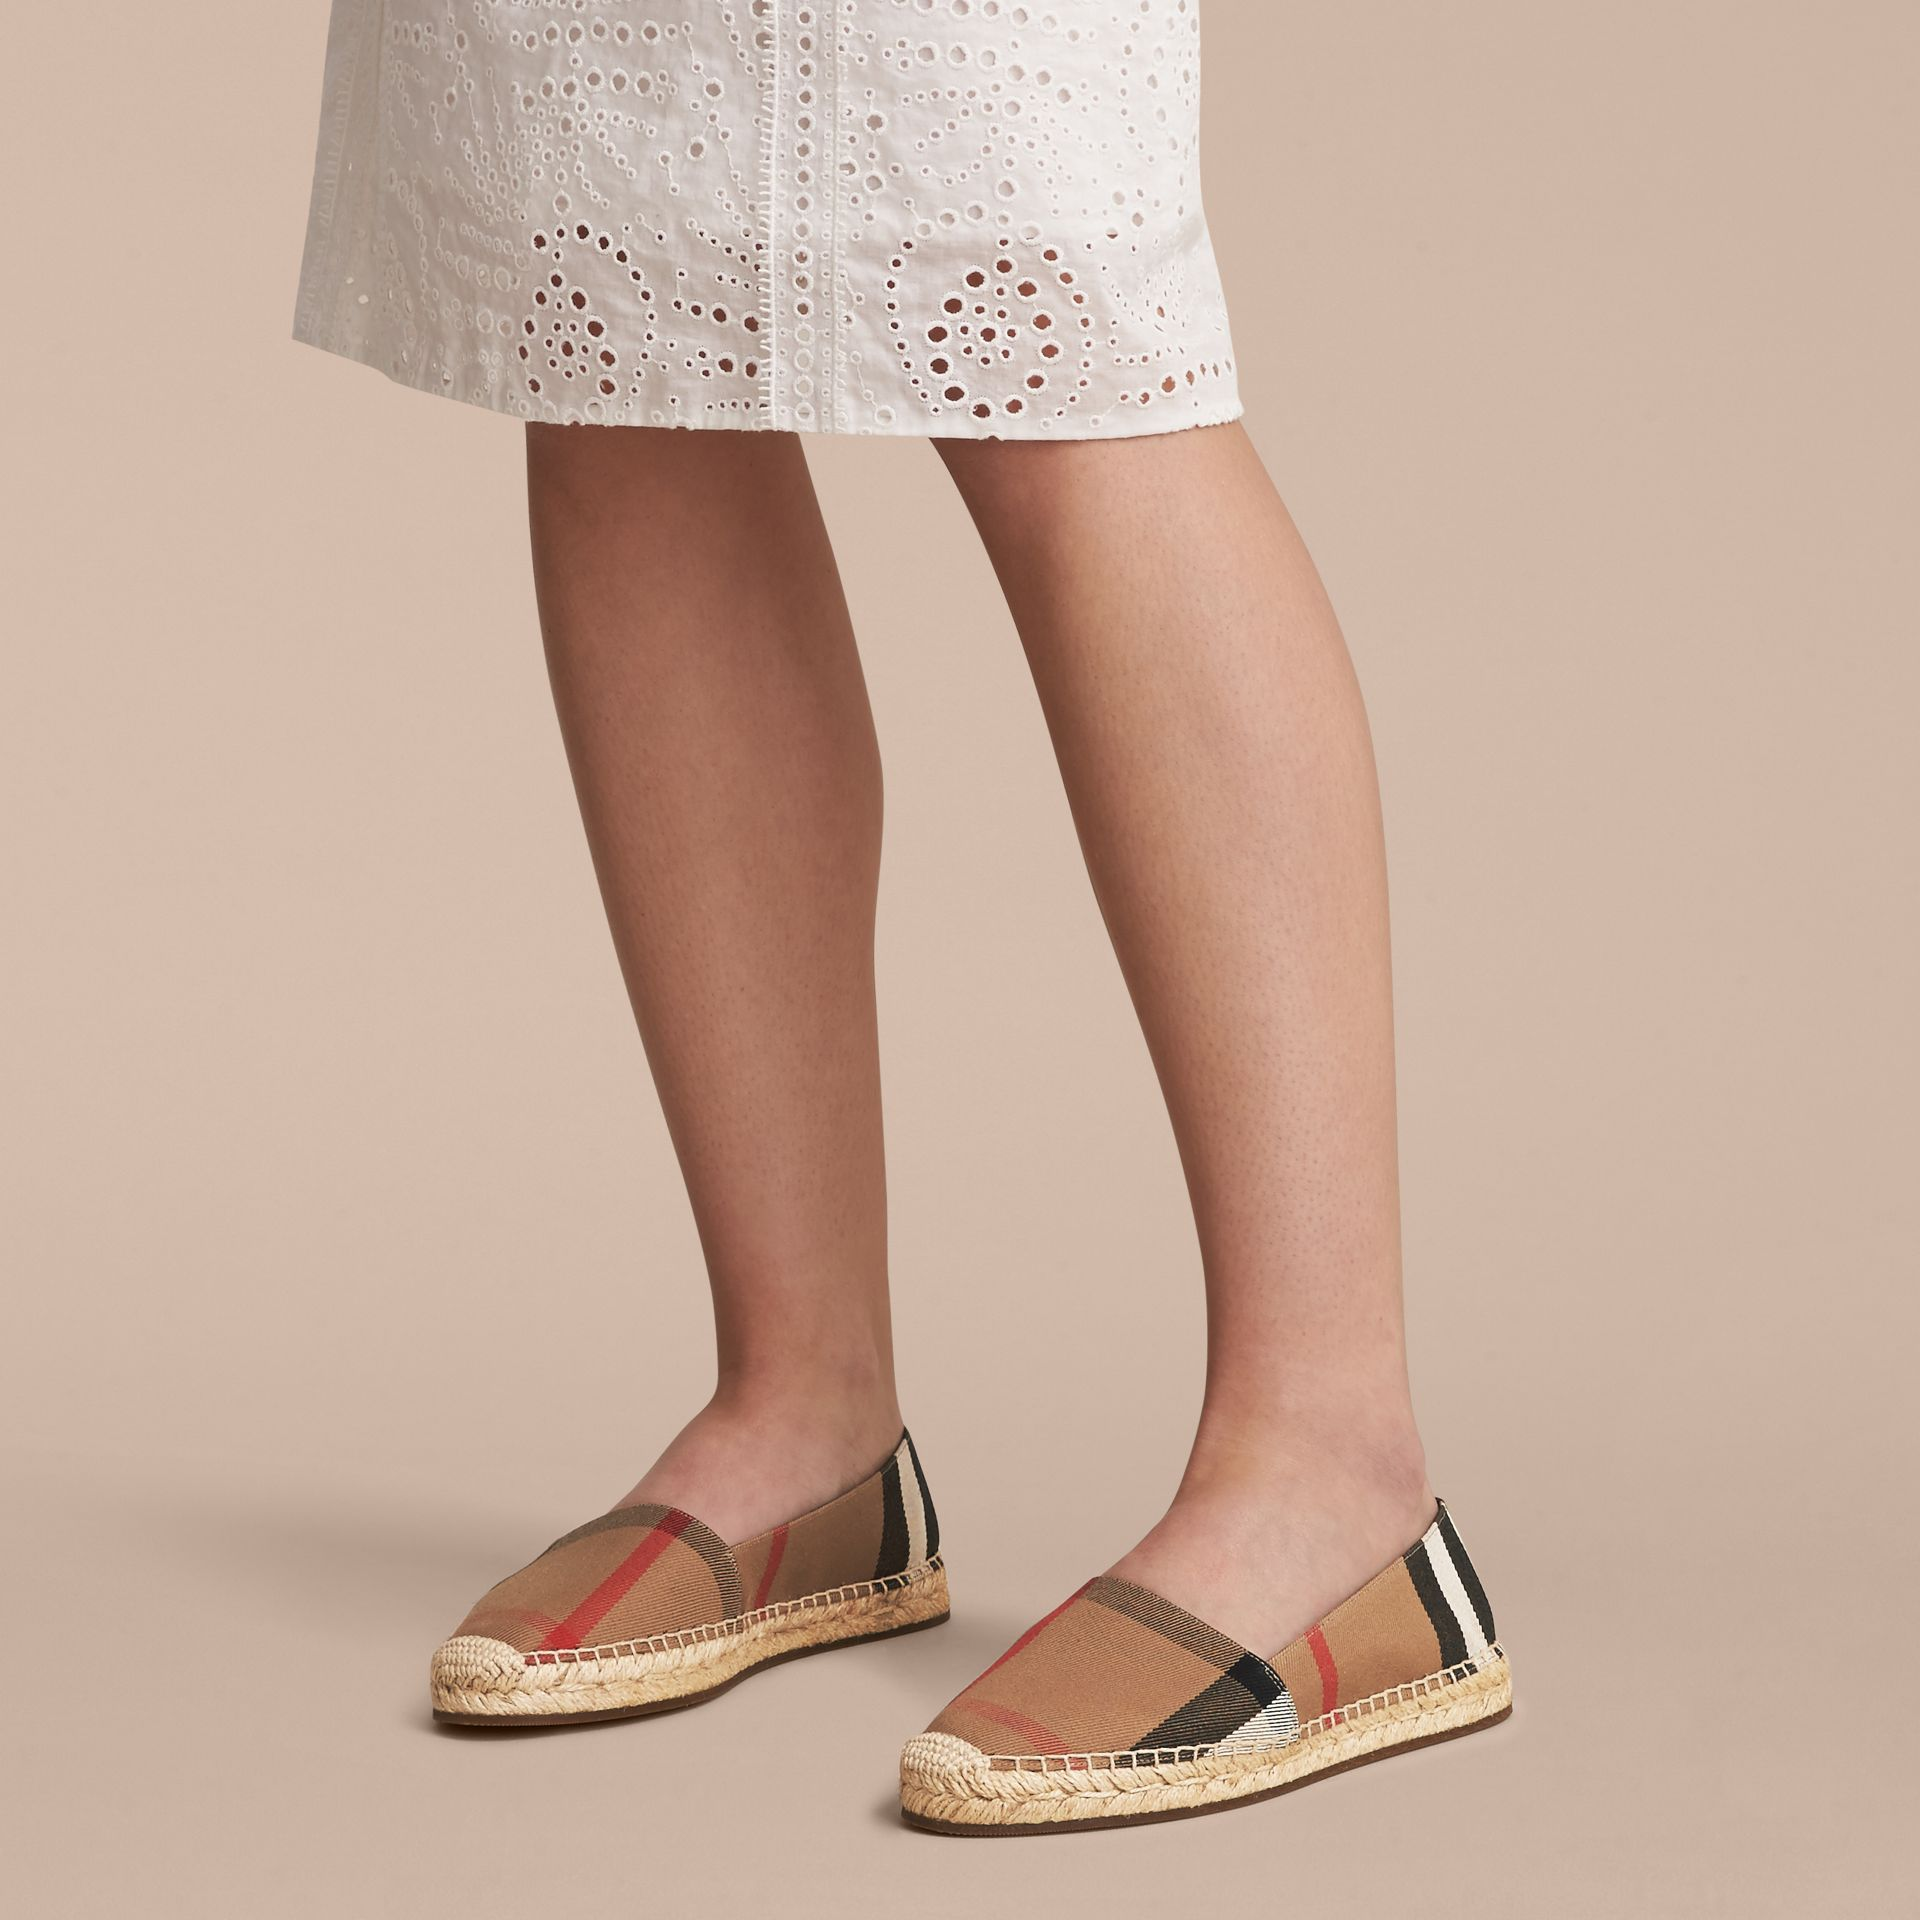 Leather Trim Canvas Check Espadrilles in Classic - Women | Burberry United Kingdom - gallery image 3